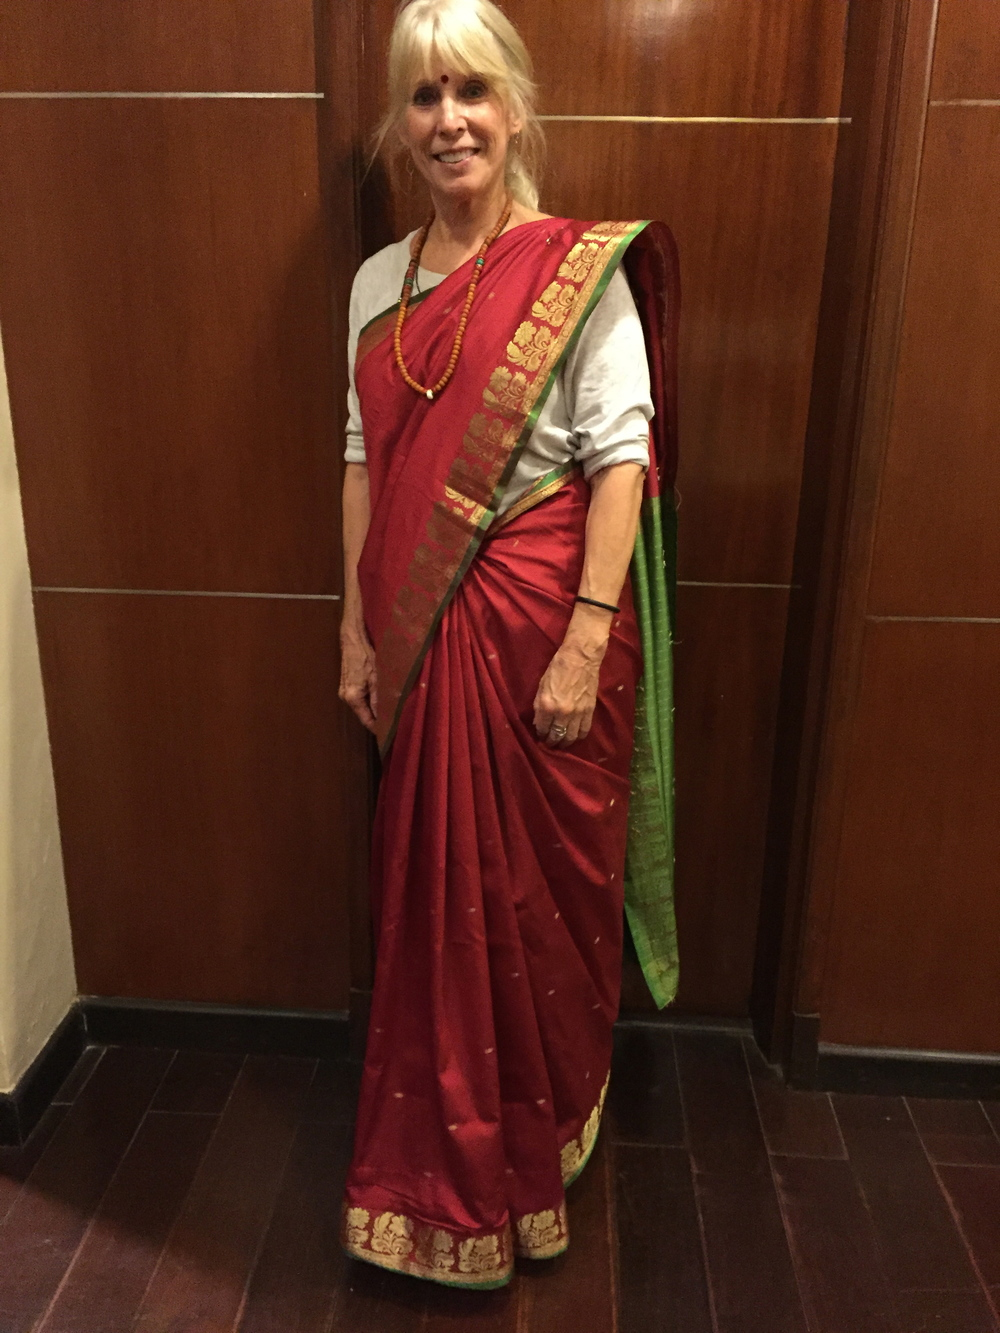 Me dressed in a sari on my last night in India, getting ready to attend a sitar concert.